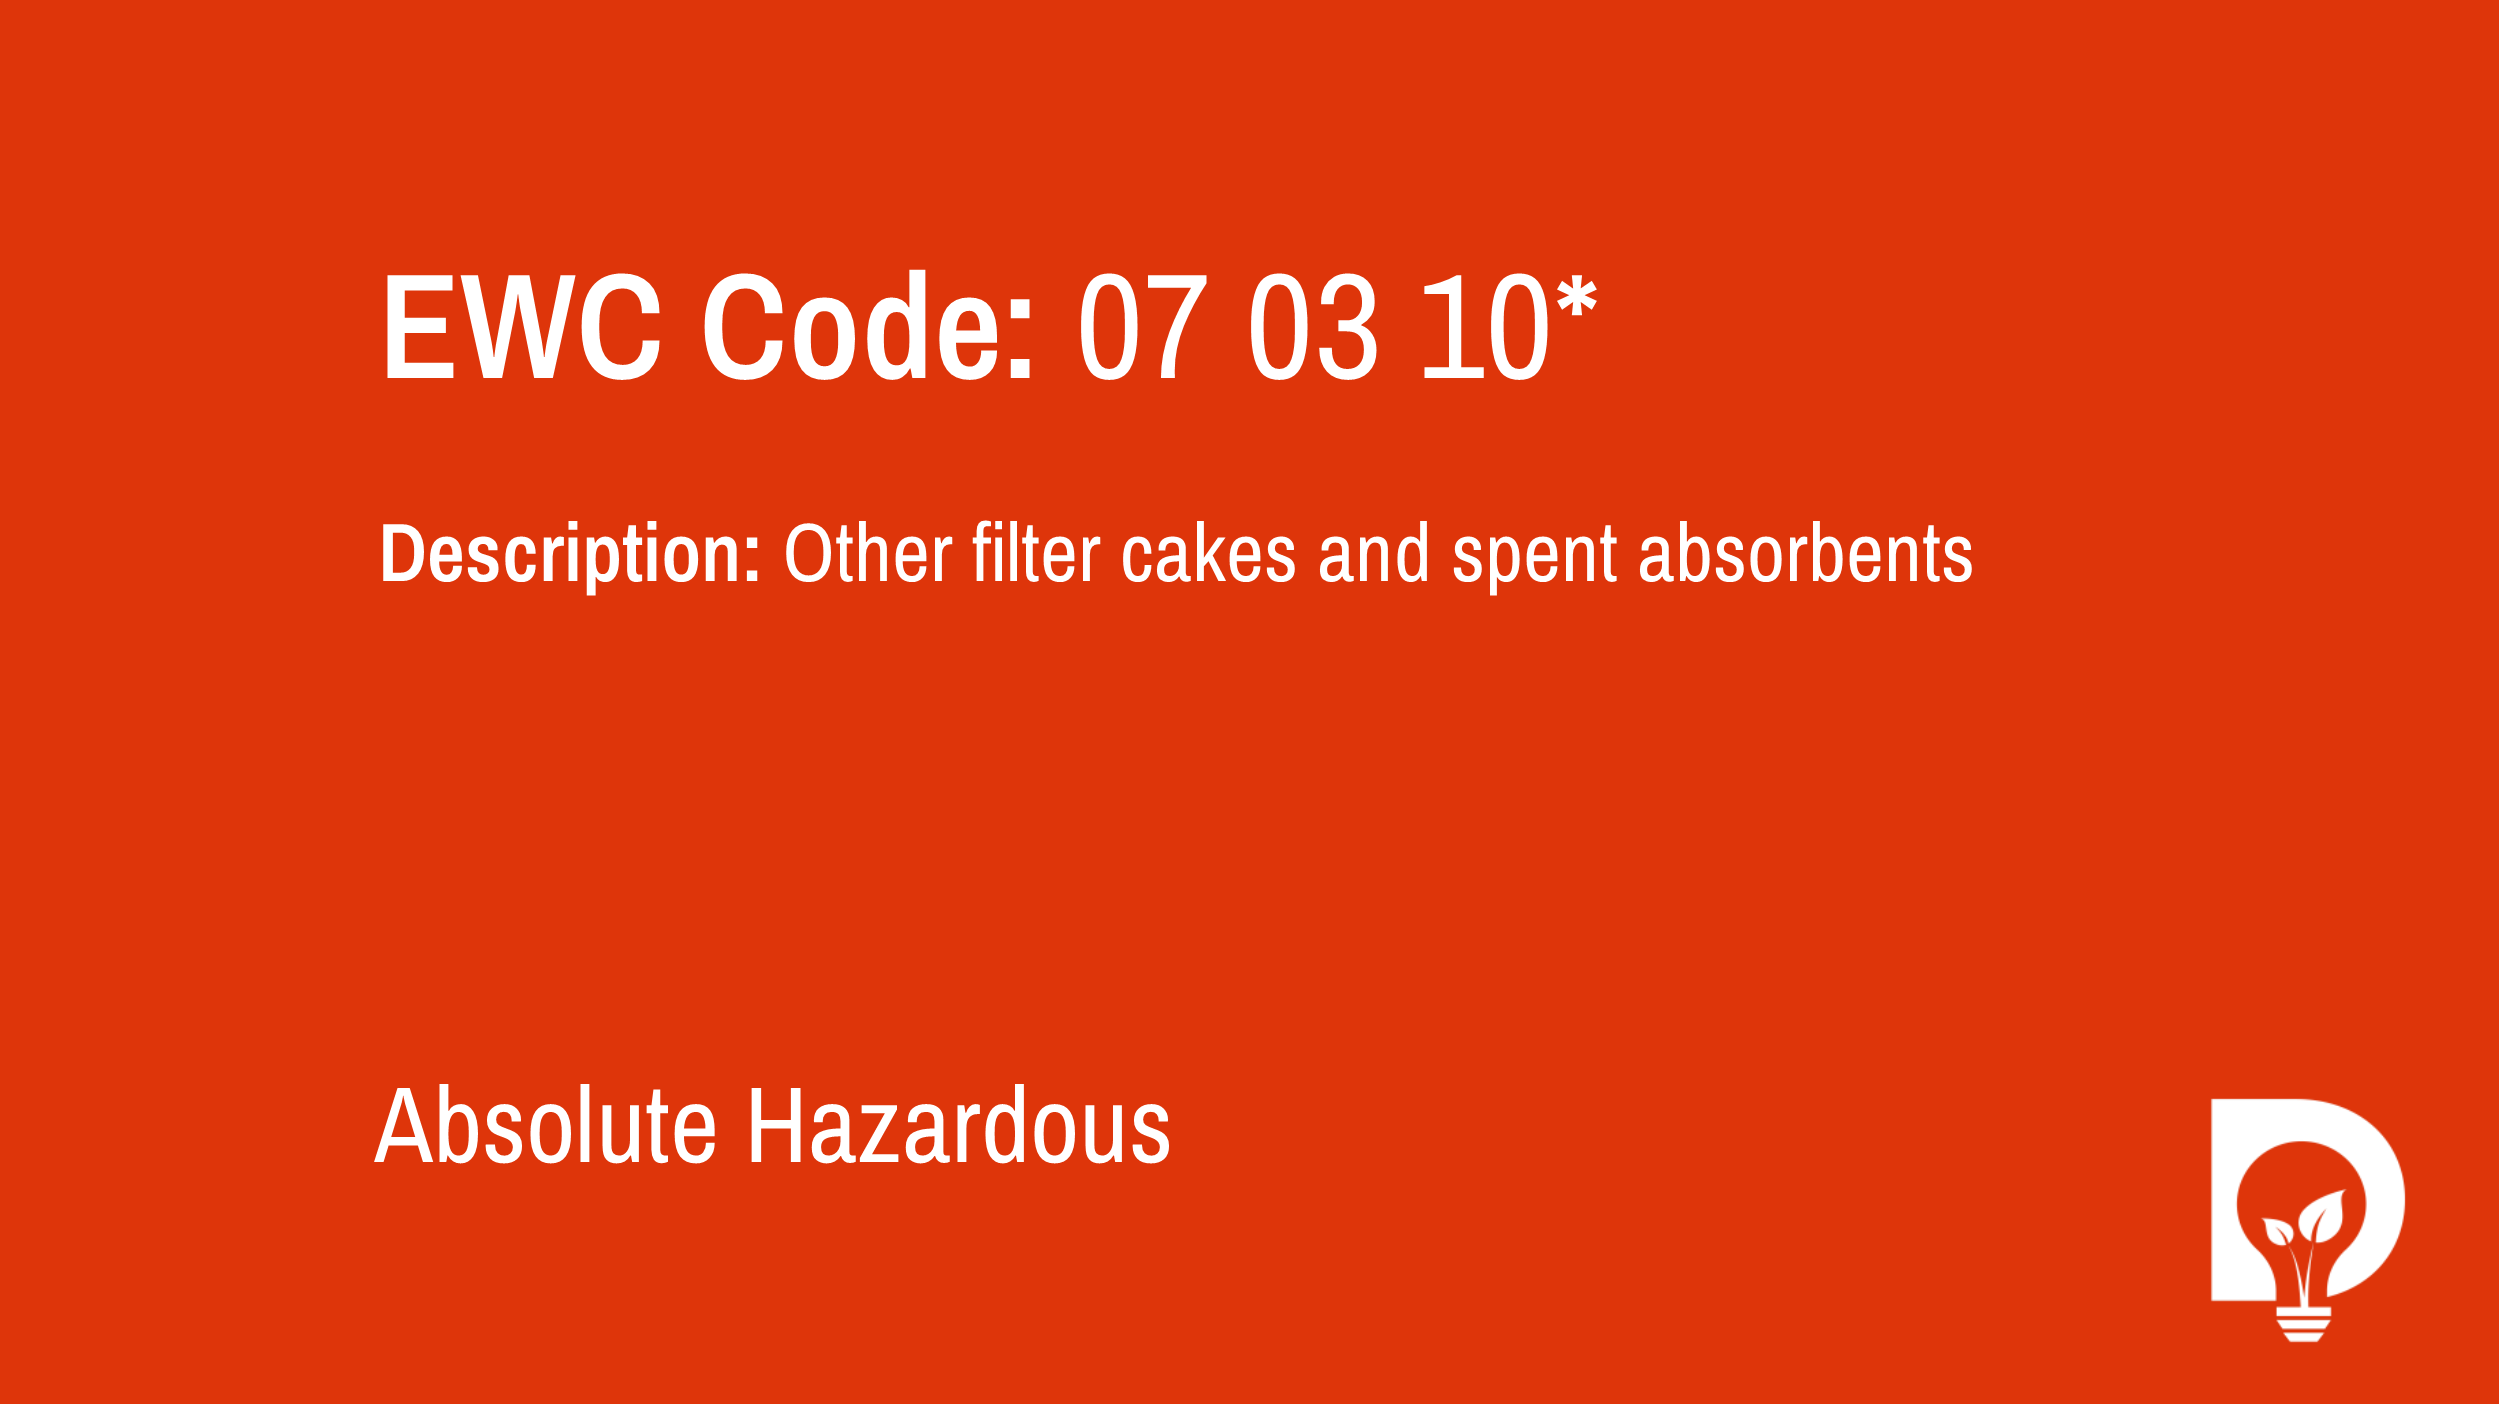 EWC Code: 07 03 10* - other filter cakes and spent absorbents. Type: Absolute Hazardous. Image by Dsposal